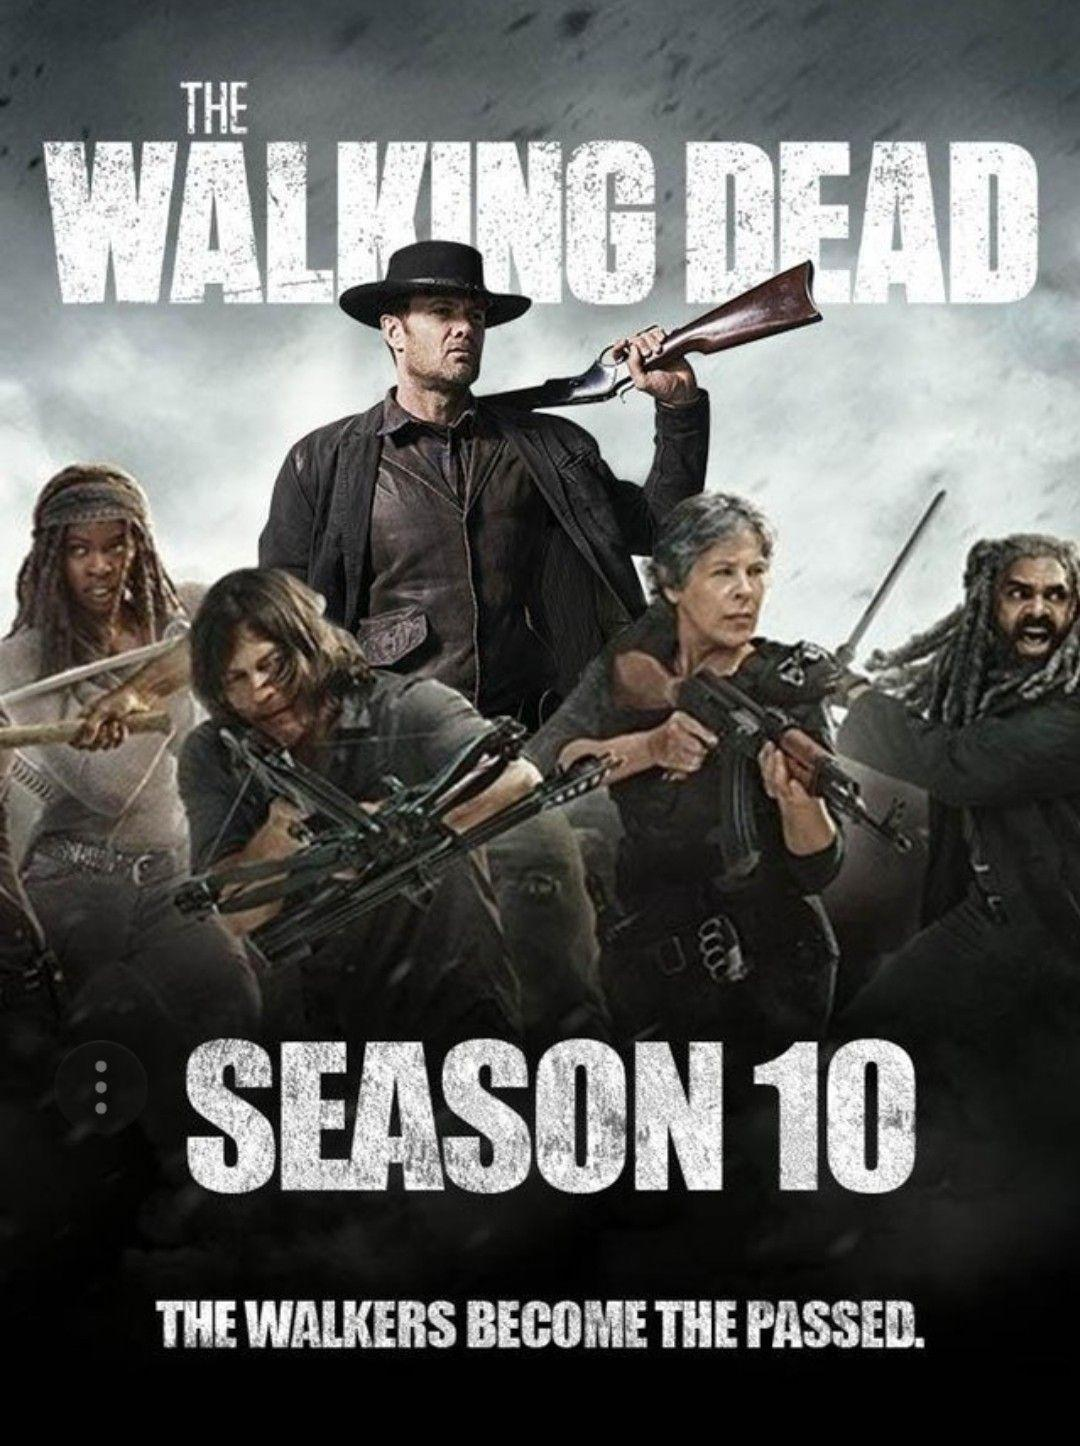 The Walking Dead Season 10 Wallpapers Wallpaper Cave